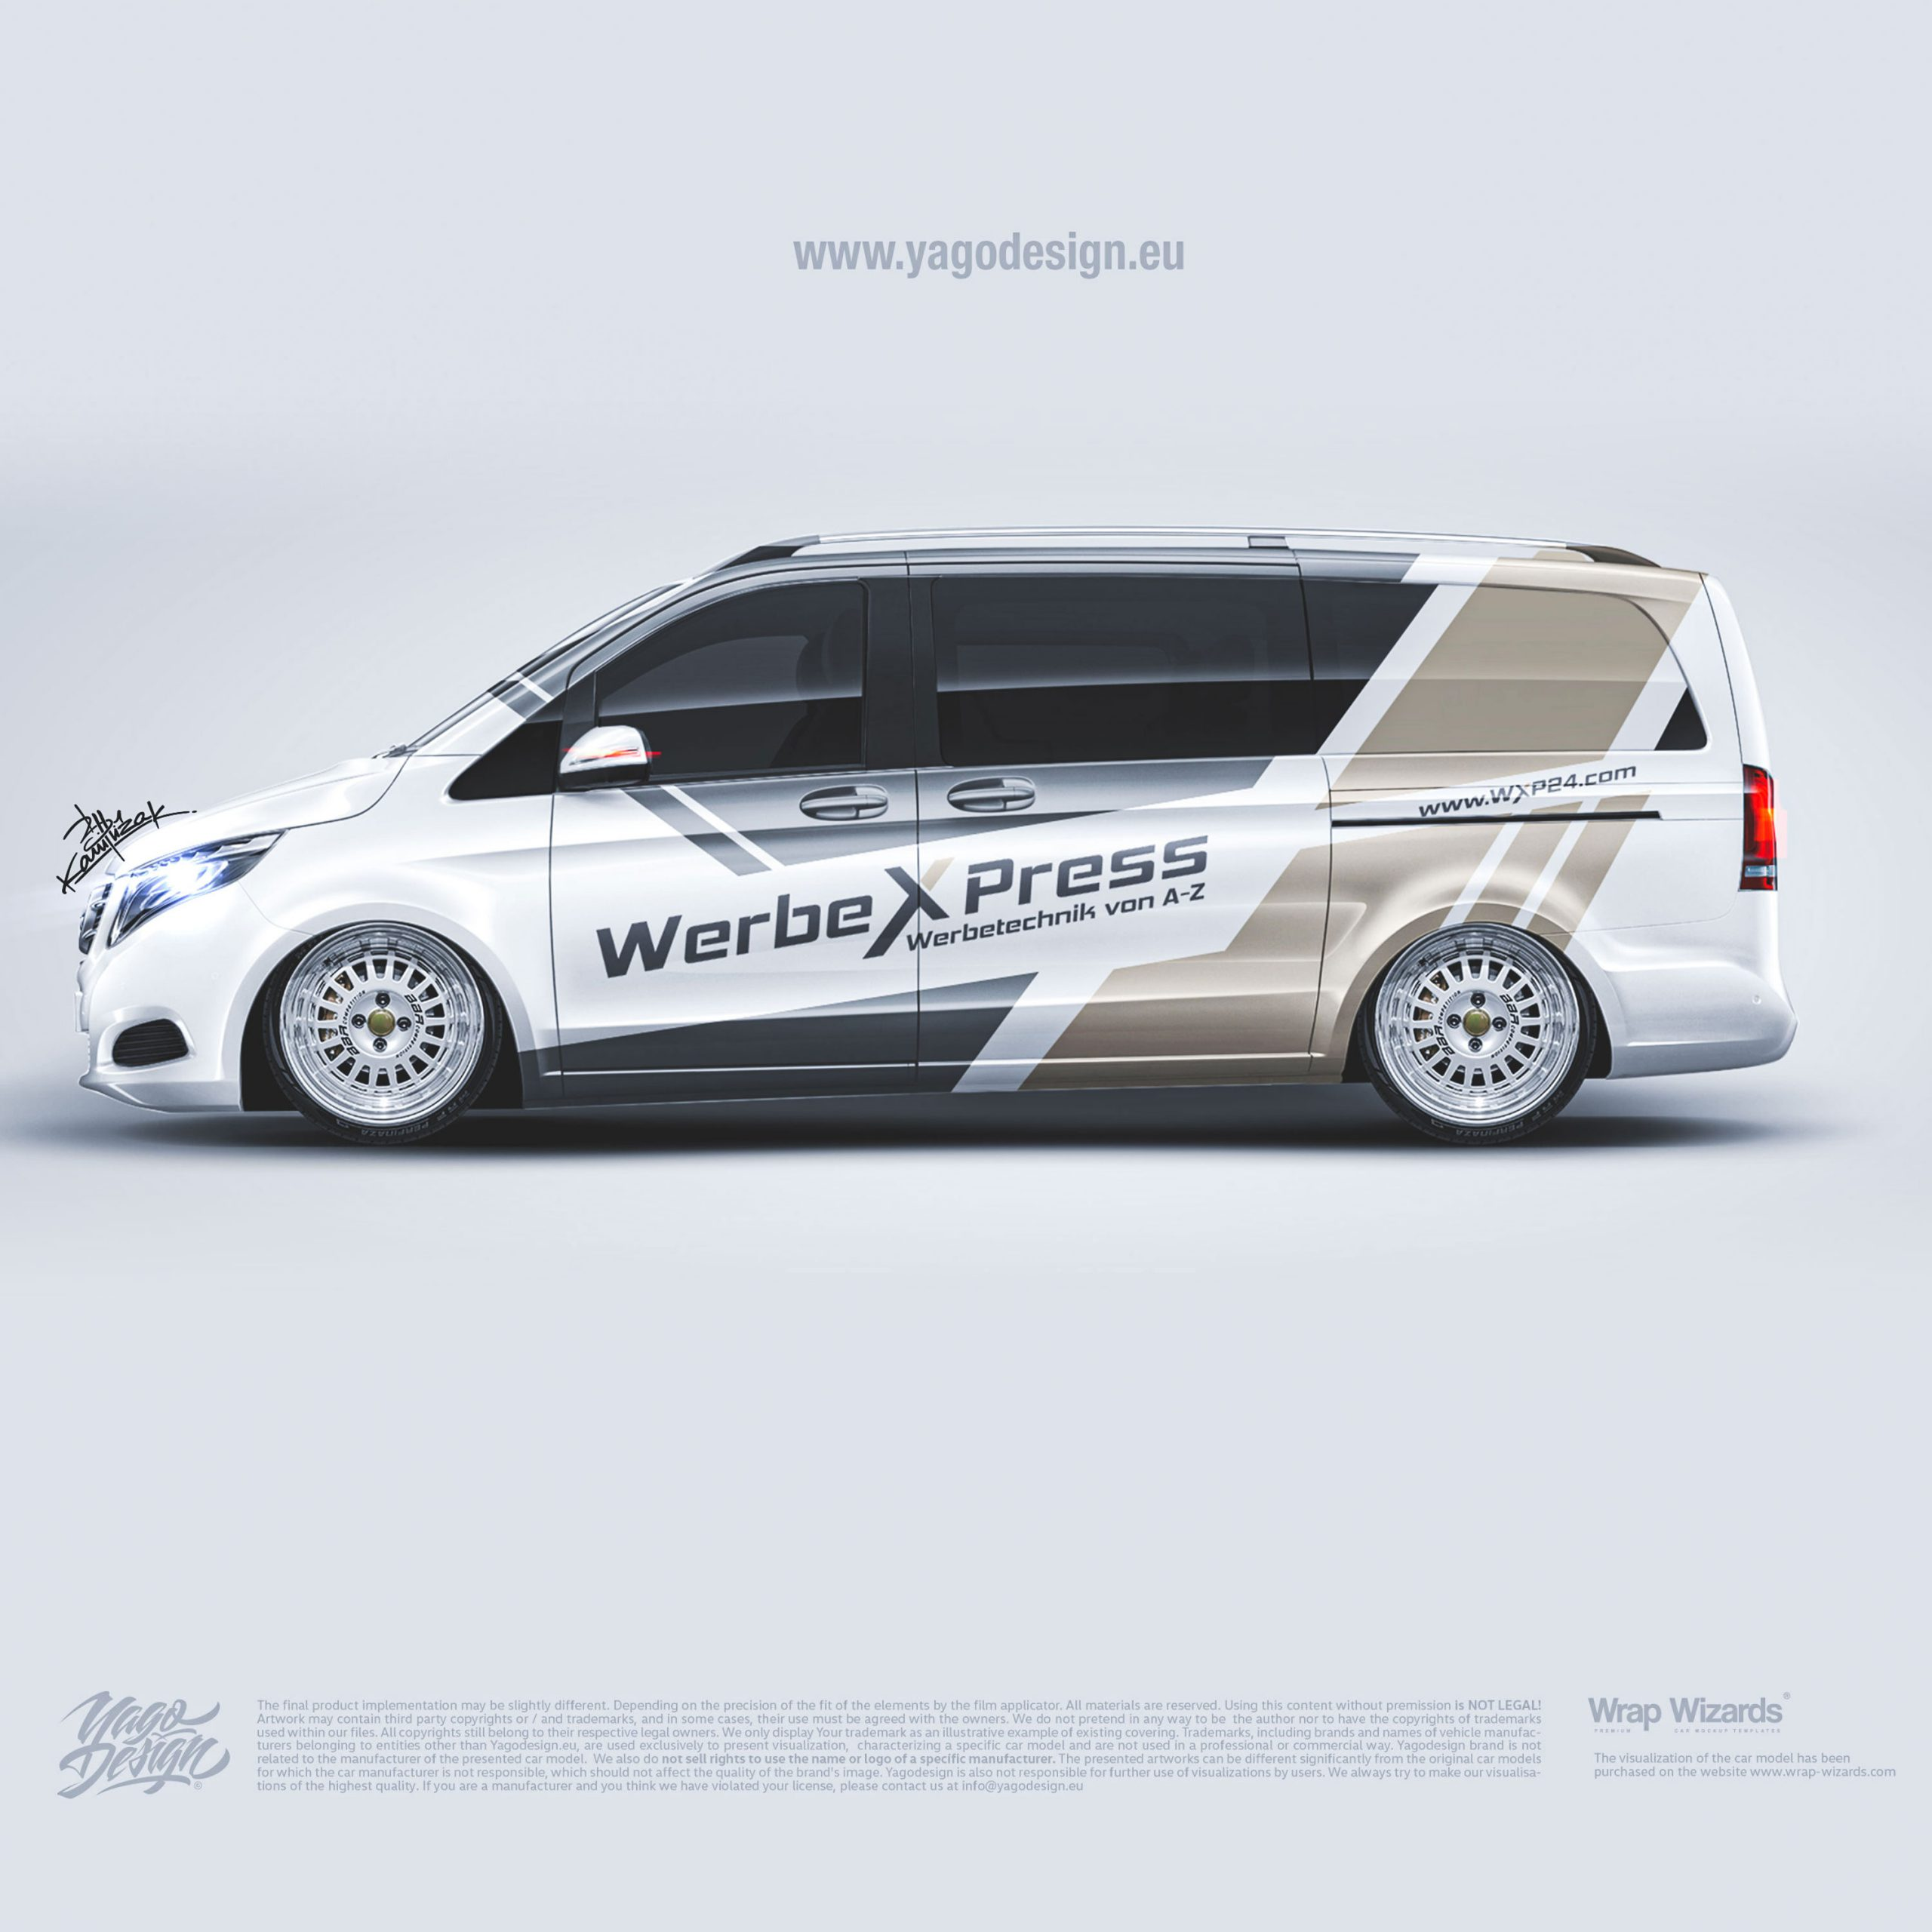 Mercedes-Benz-V-class-by-Yagodesign-Livery-Design-Car-wrapping-studio